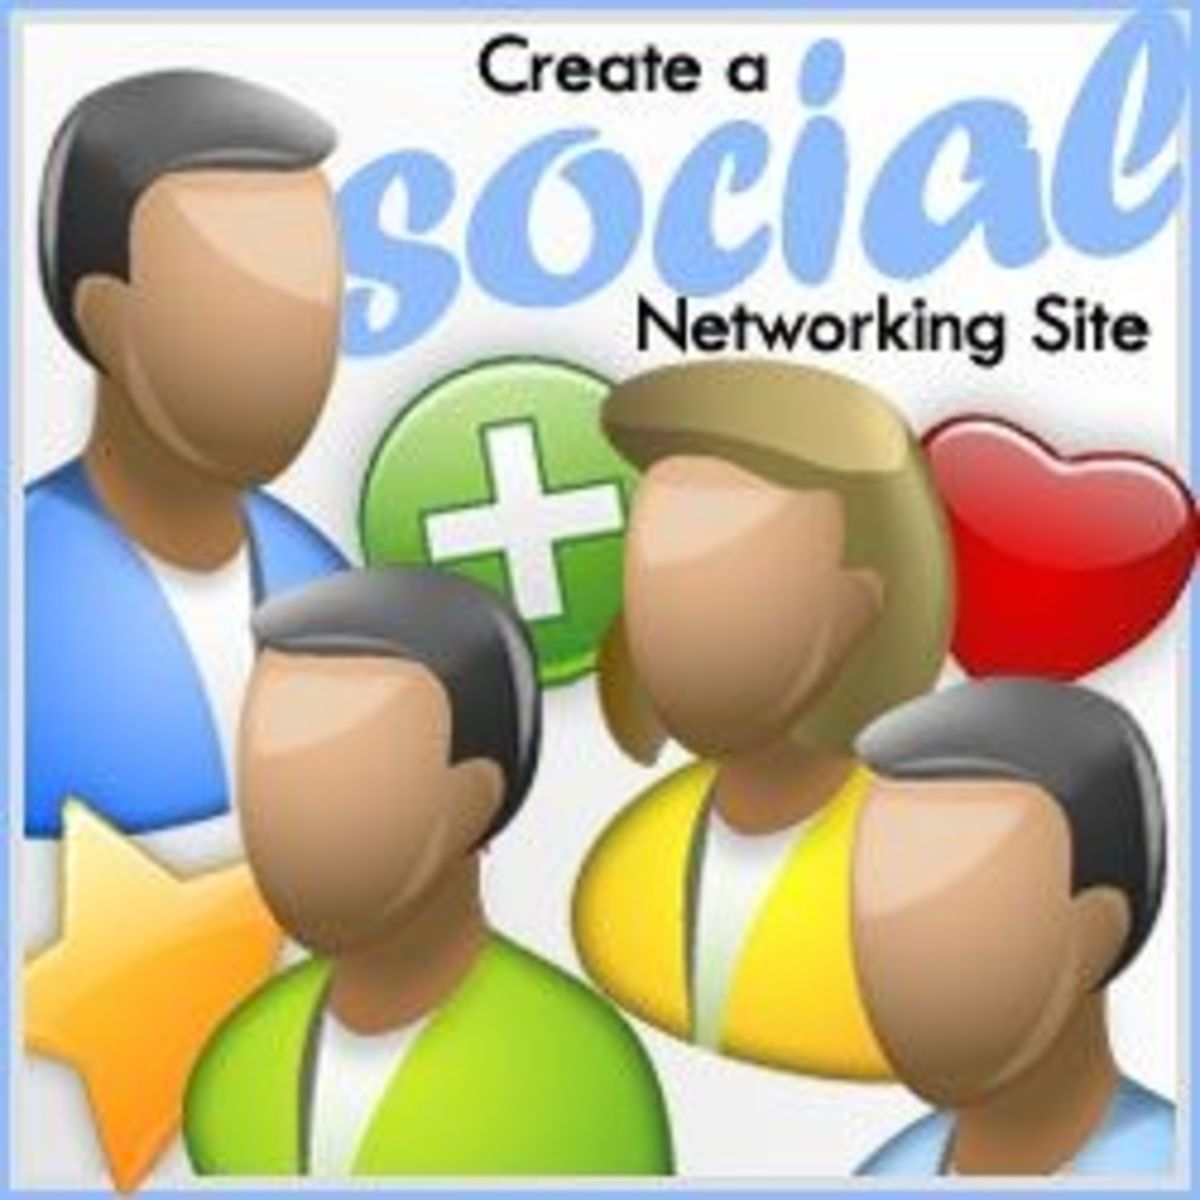 how to create a social networking site pdf